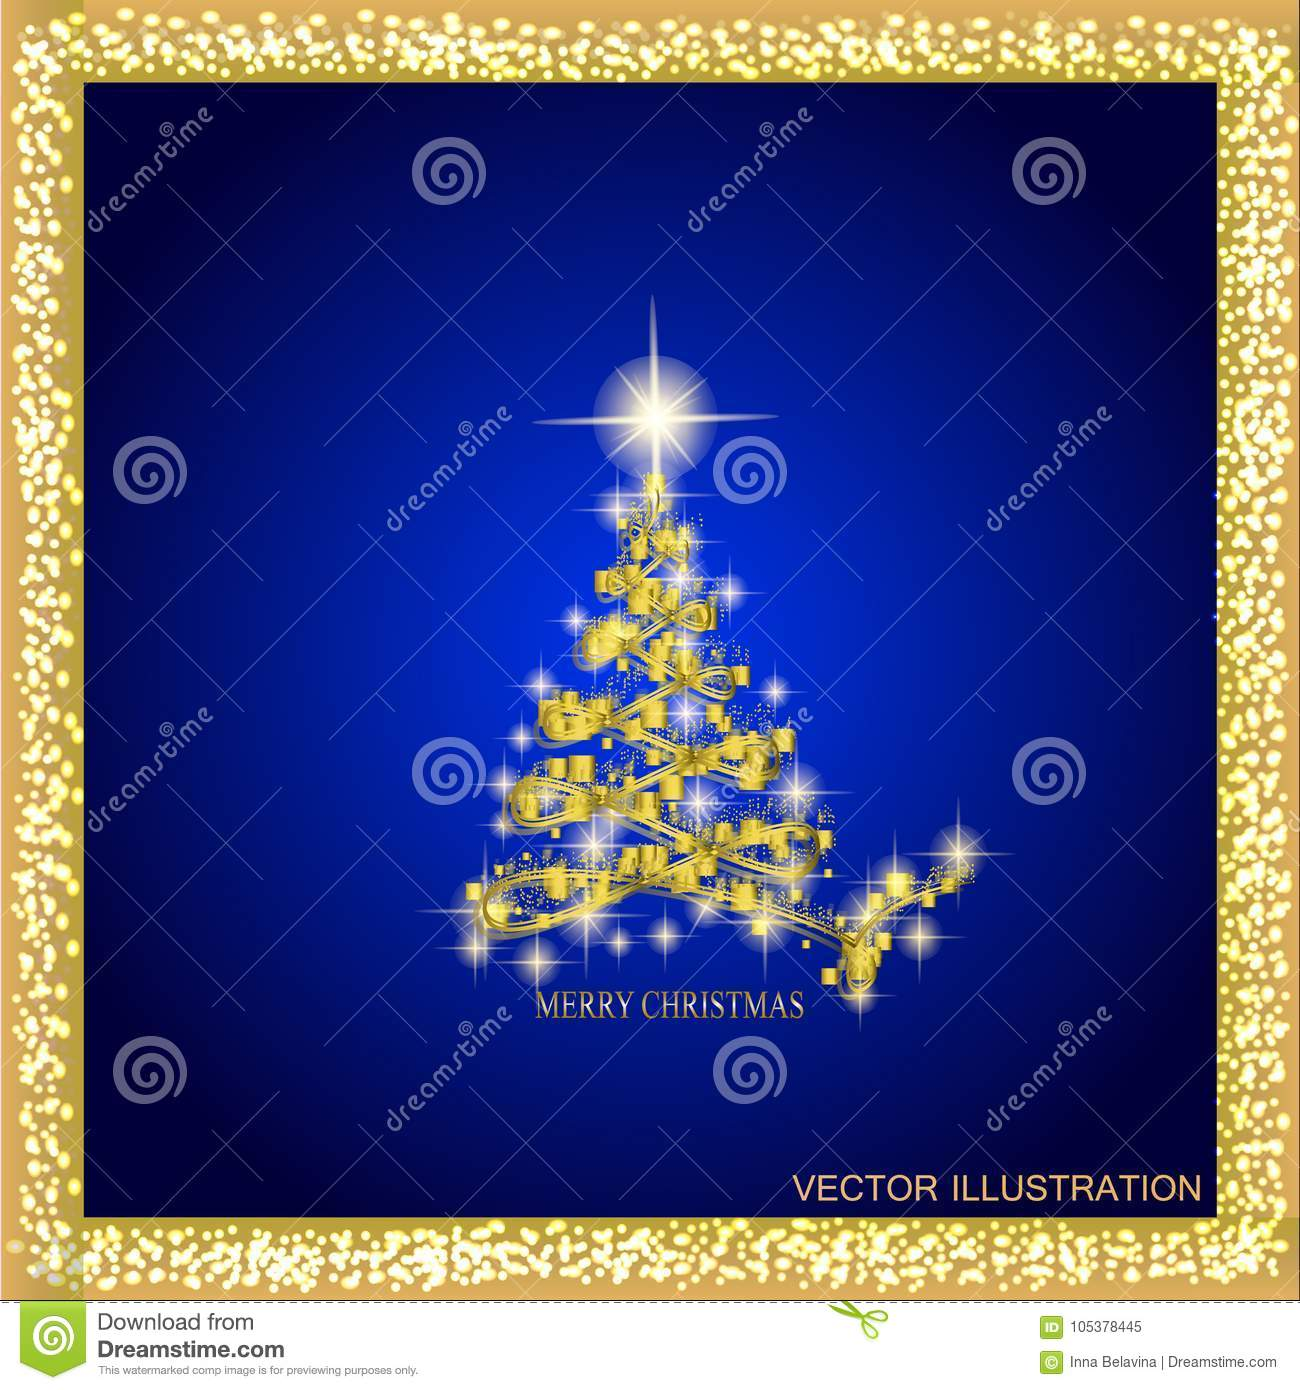 download abstract background with gold christmas tree and stars illustration in blue and gold colors